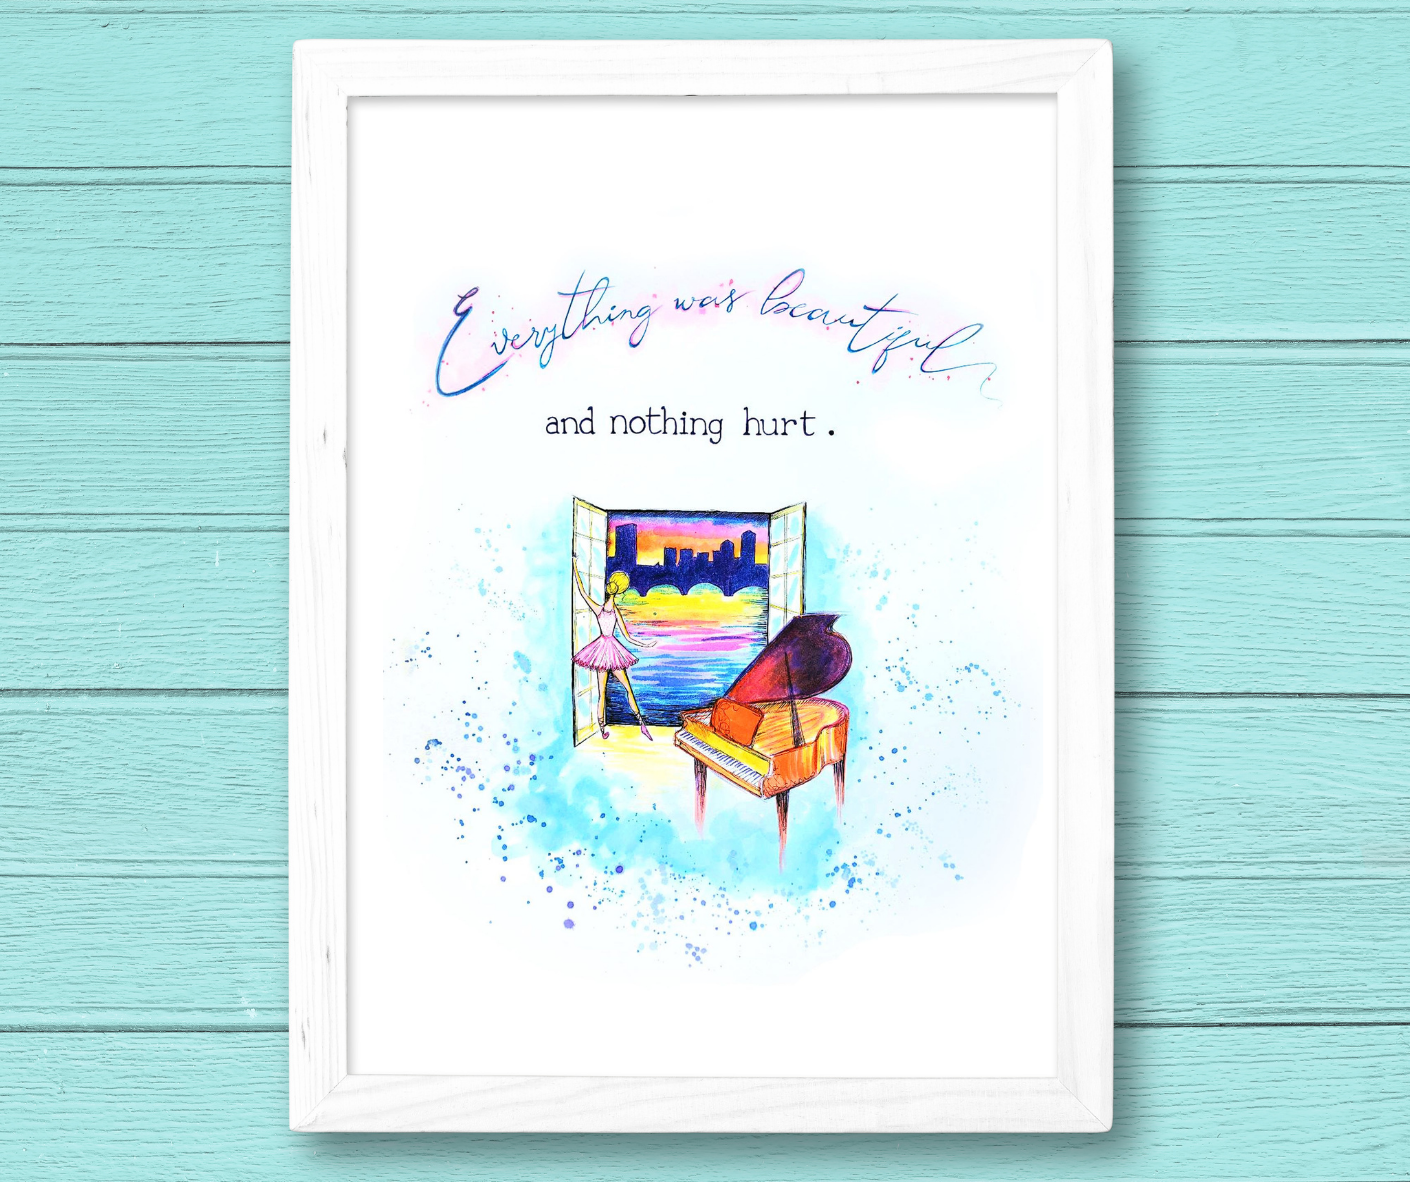 custom illustration to commemorate deceases sister, watercolor painting of a ballerina with a piano